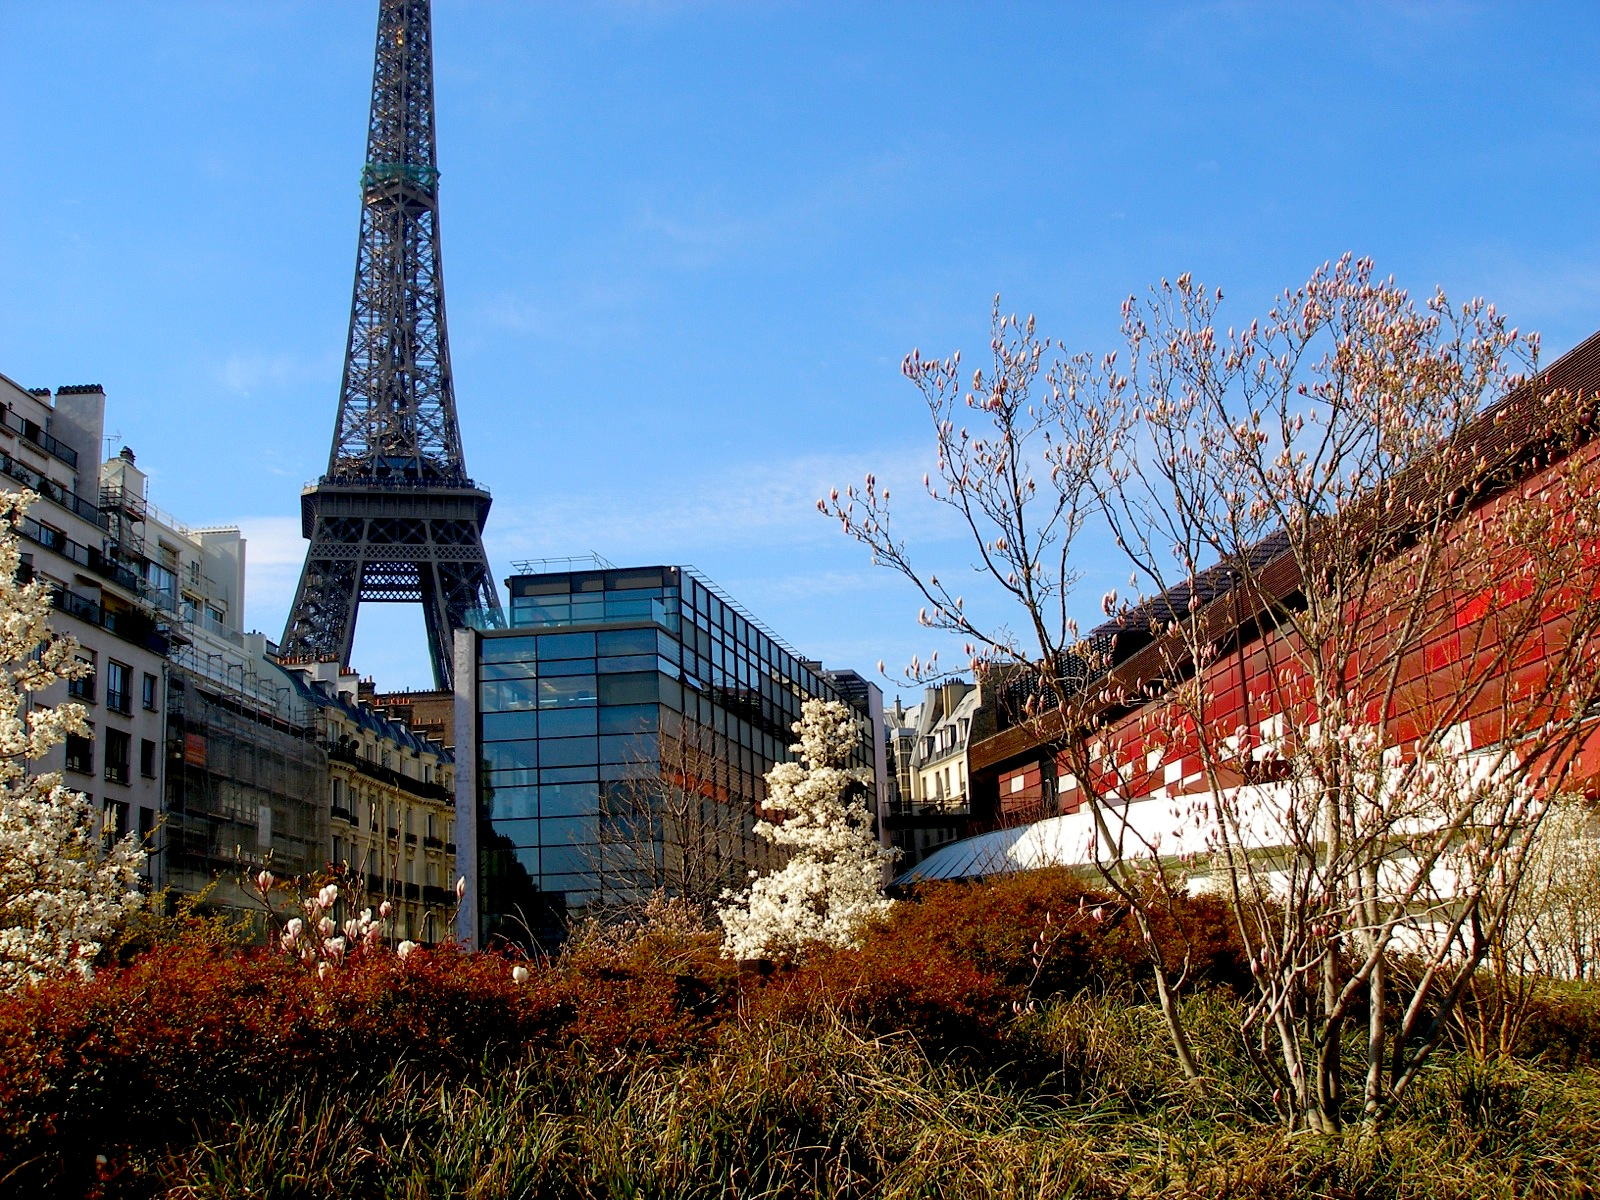 Off the beaten path museums in Paris: Musee Cluny, Musee de quai Branly, Musee Zadkine, and more